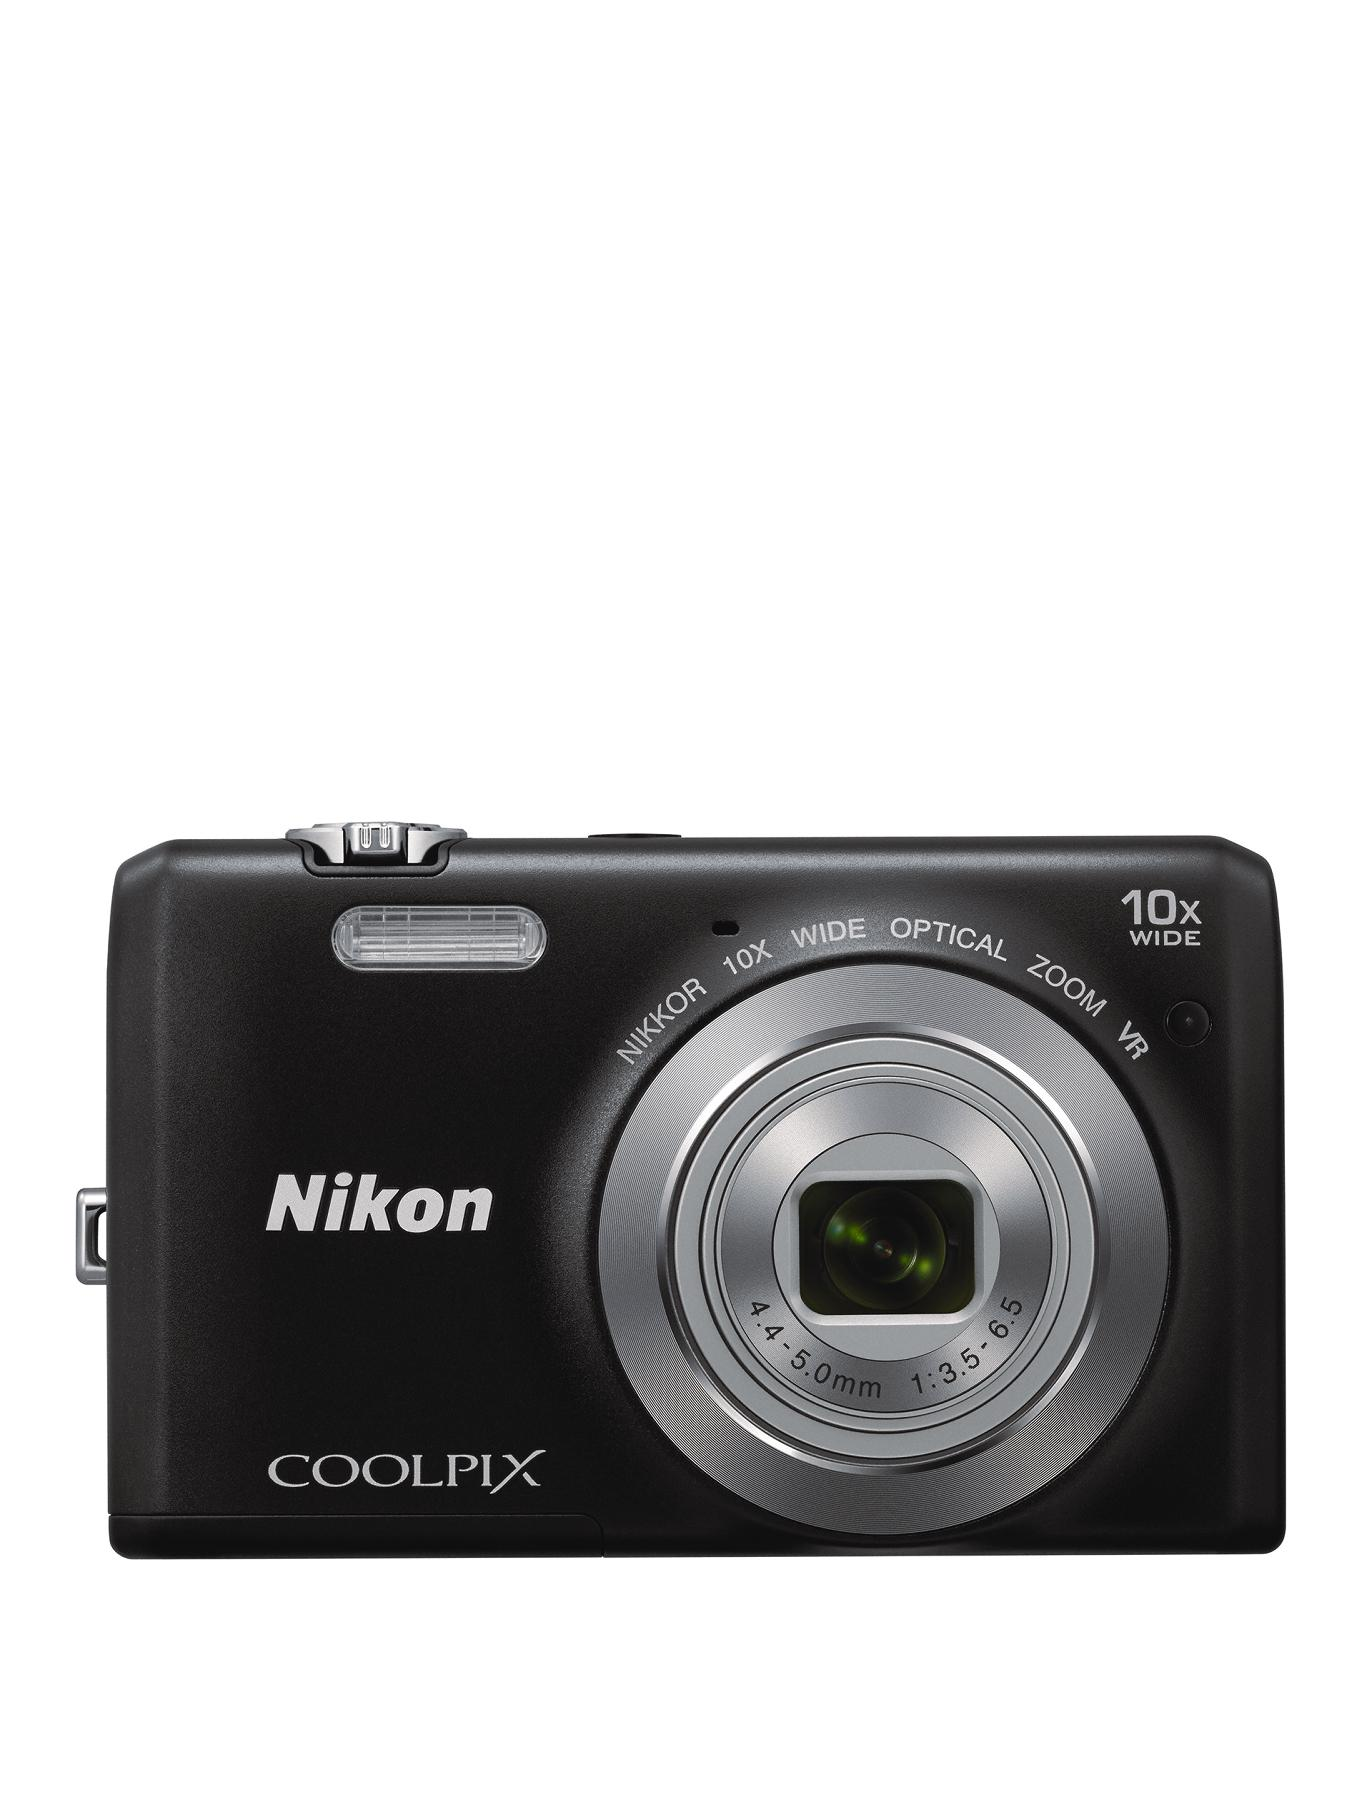 Nikon S6700 Coolpix 20 Megapixel Digital Camera